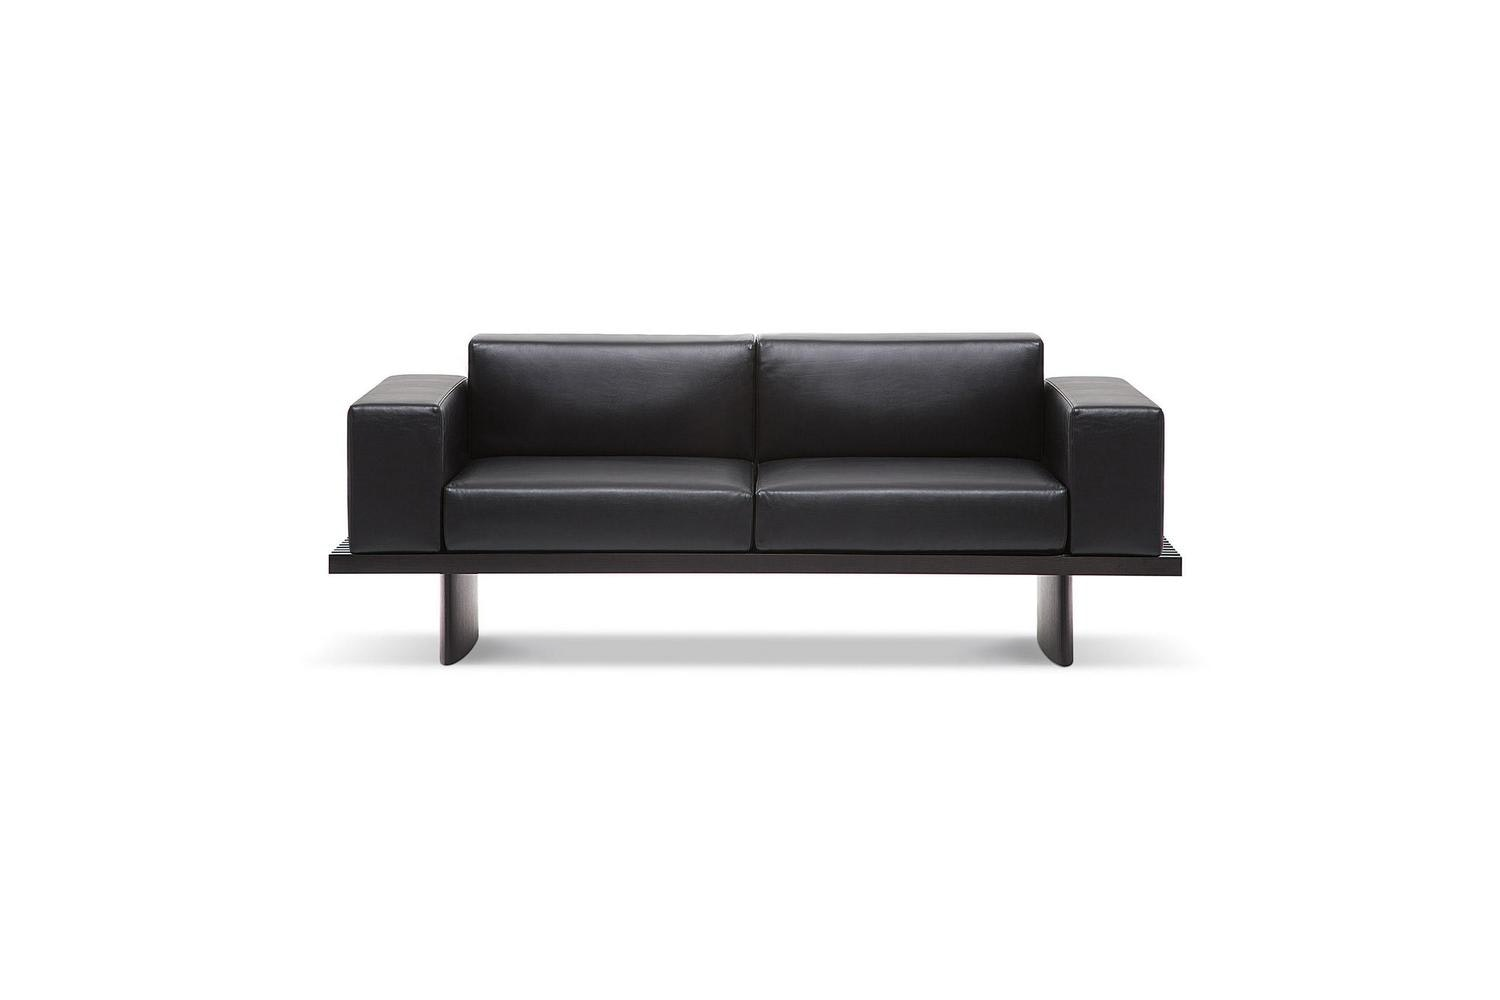 514 Refolo Sofa by Charlotte Perriand for Cassina